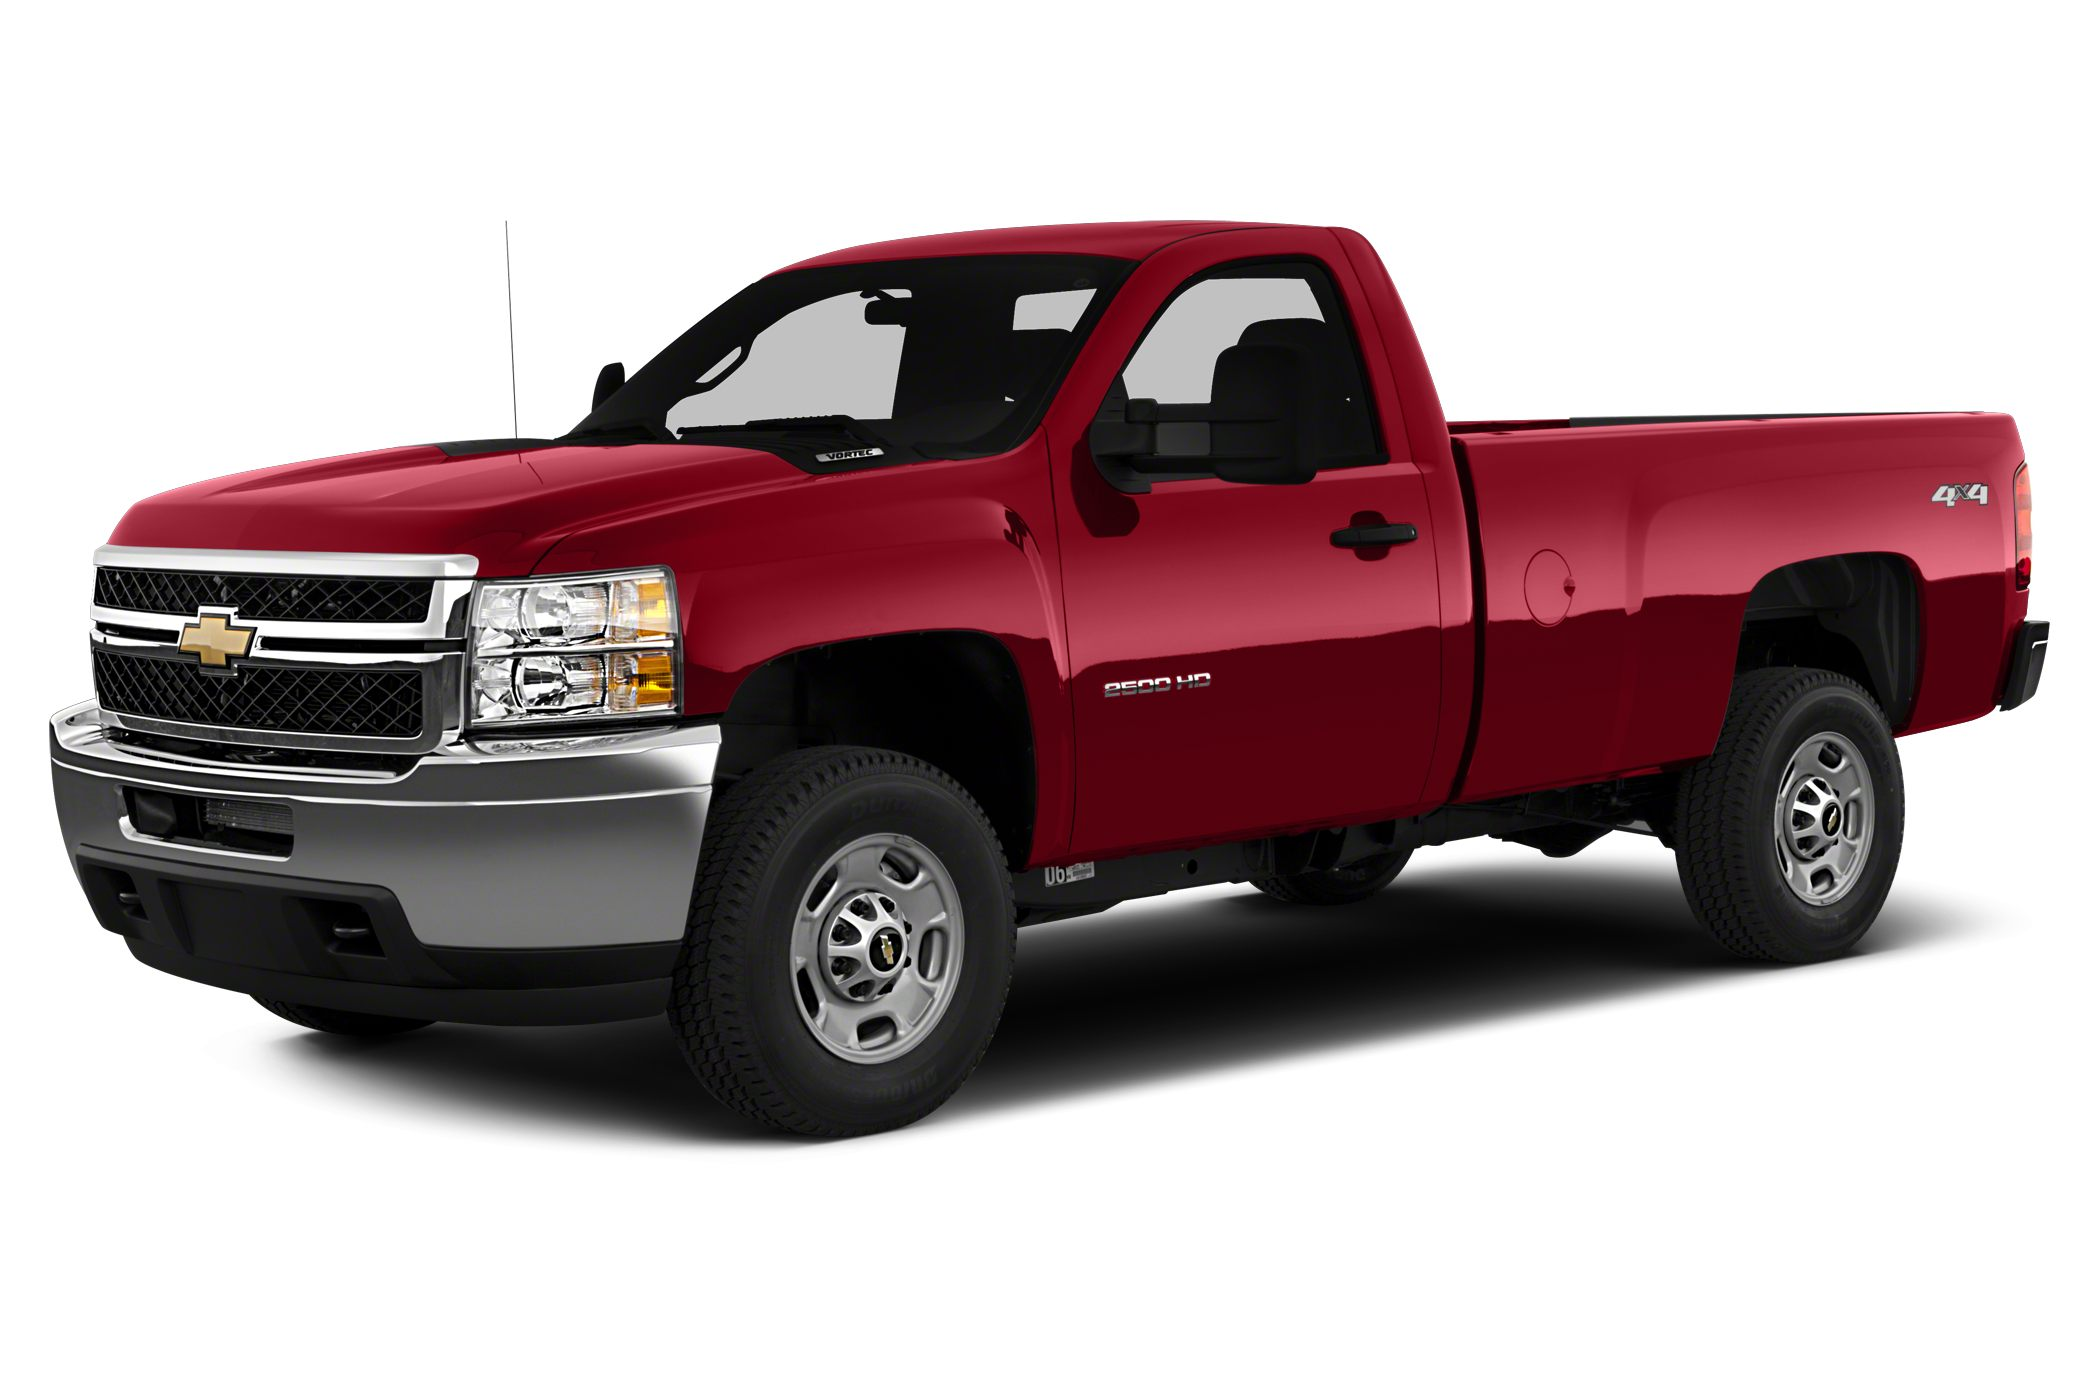 2014 Chevrolet Silverado 3500 Work Truck Crew Cab Pickup for sale in Anchorage for $38,991 with 9,750 miles.